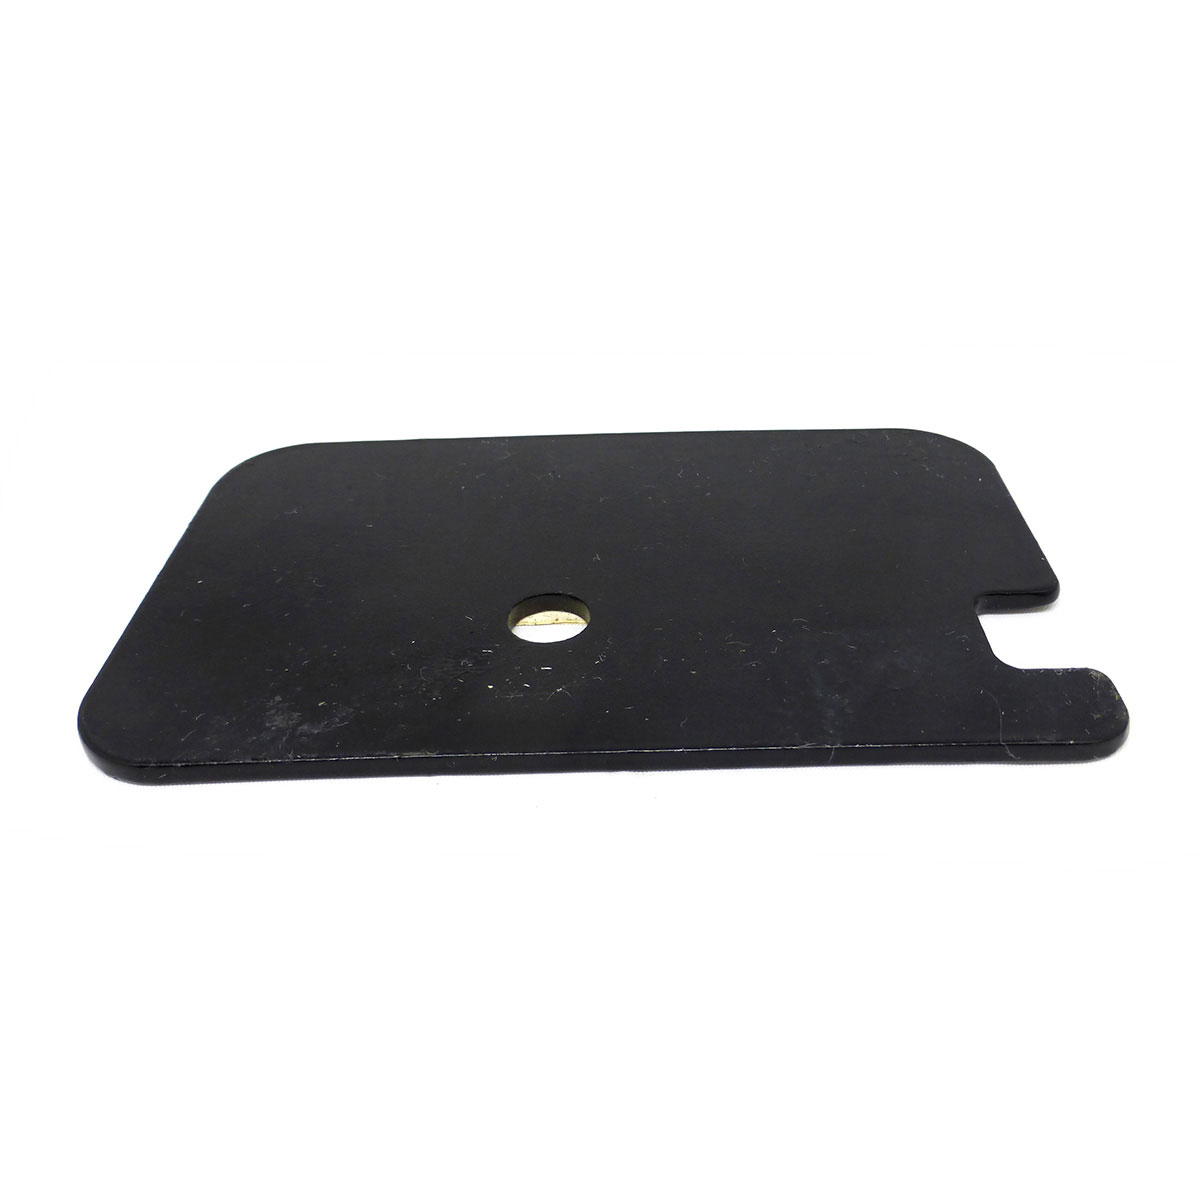 Belt Guard Plate Powder Black 703-2732-0637